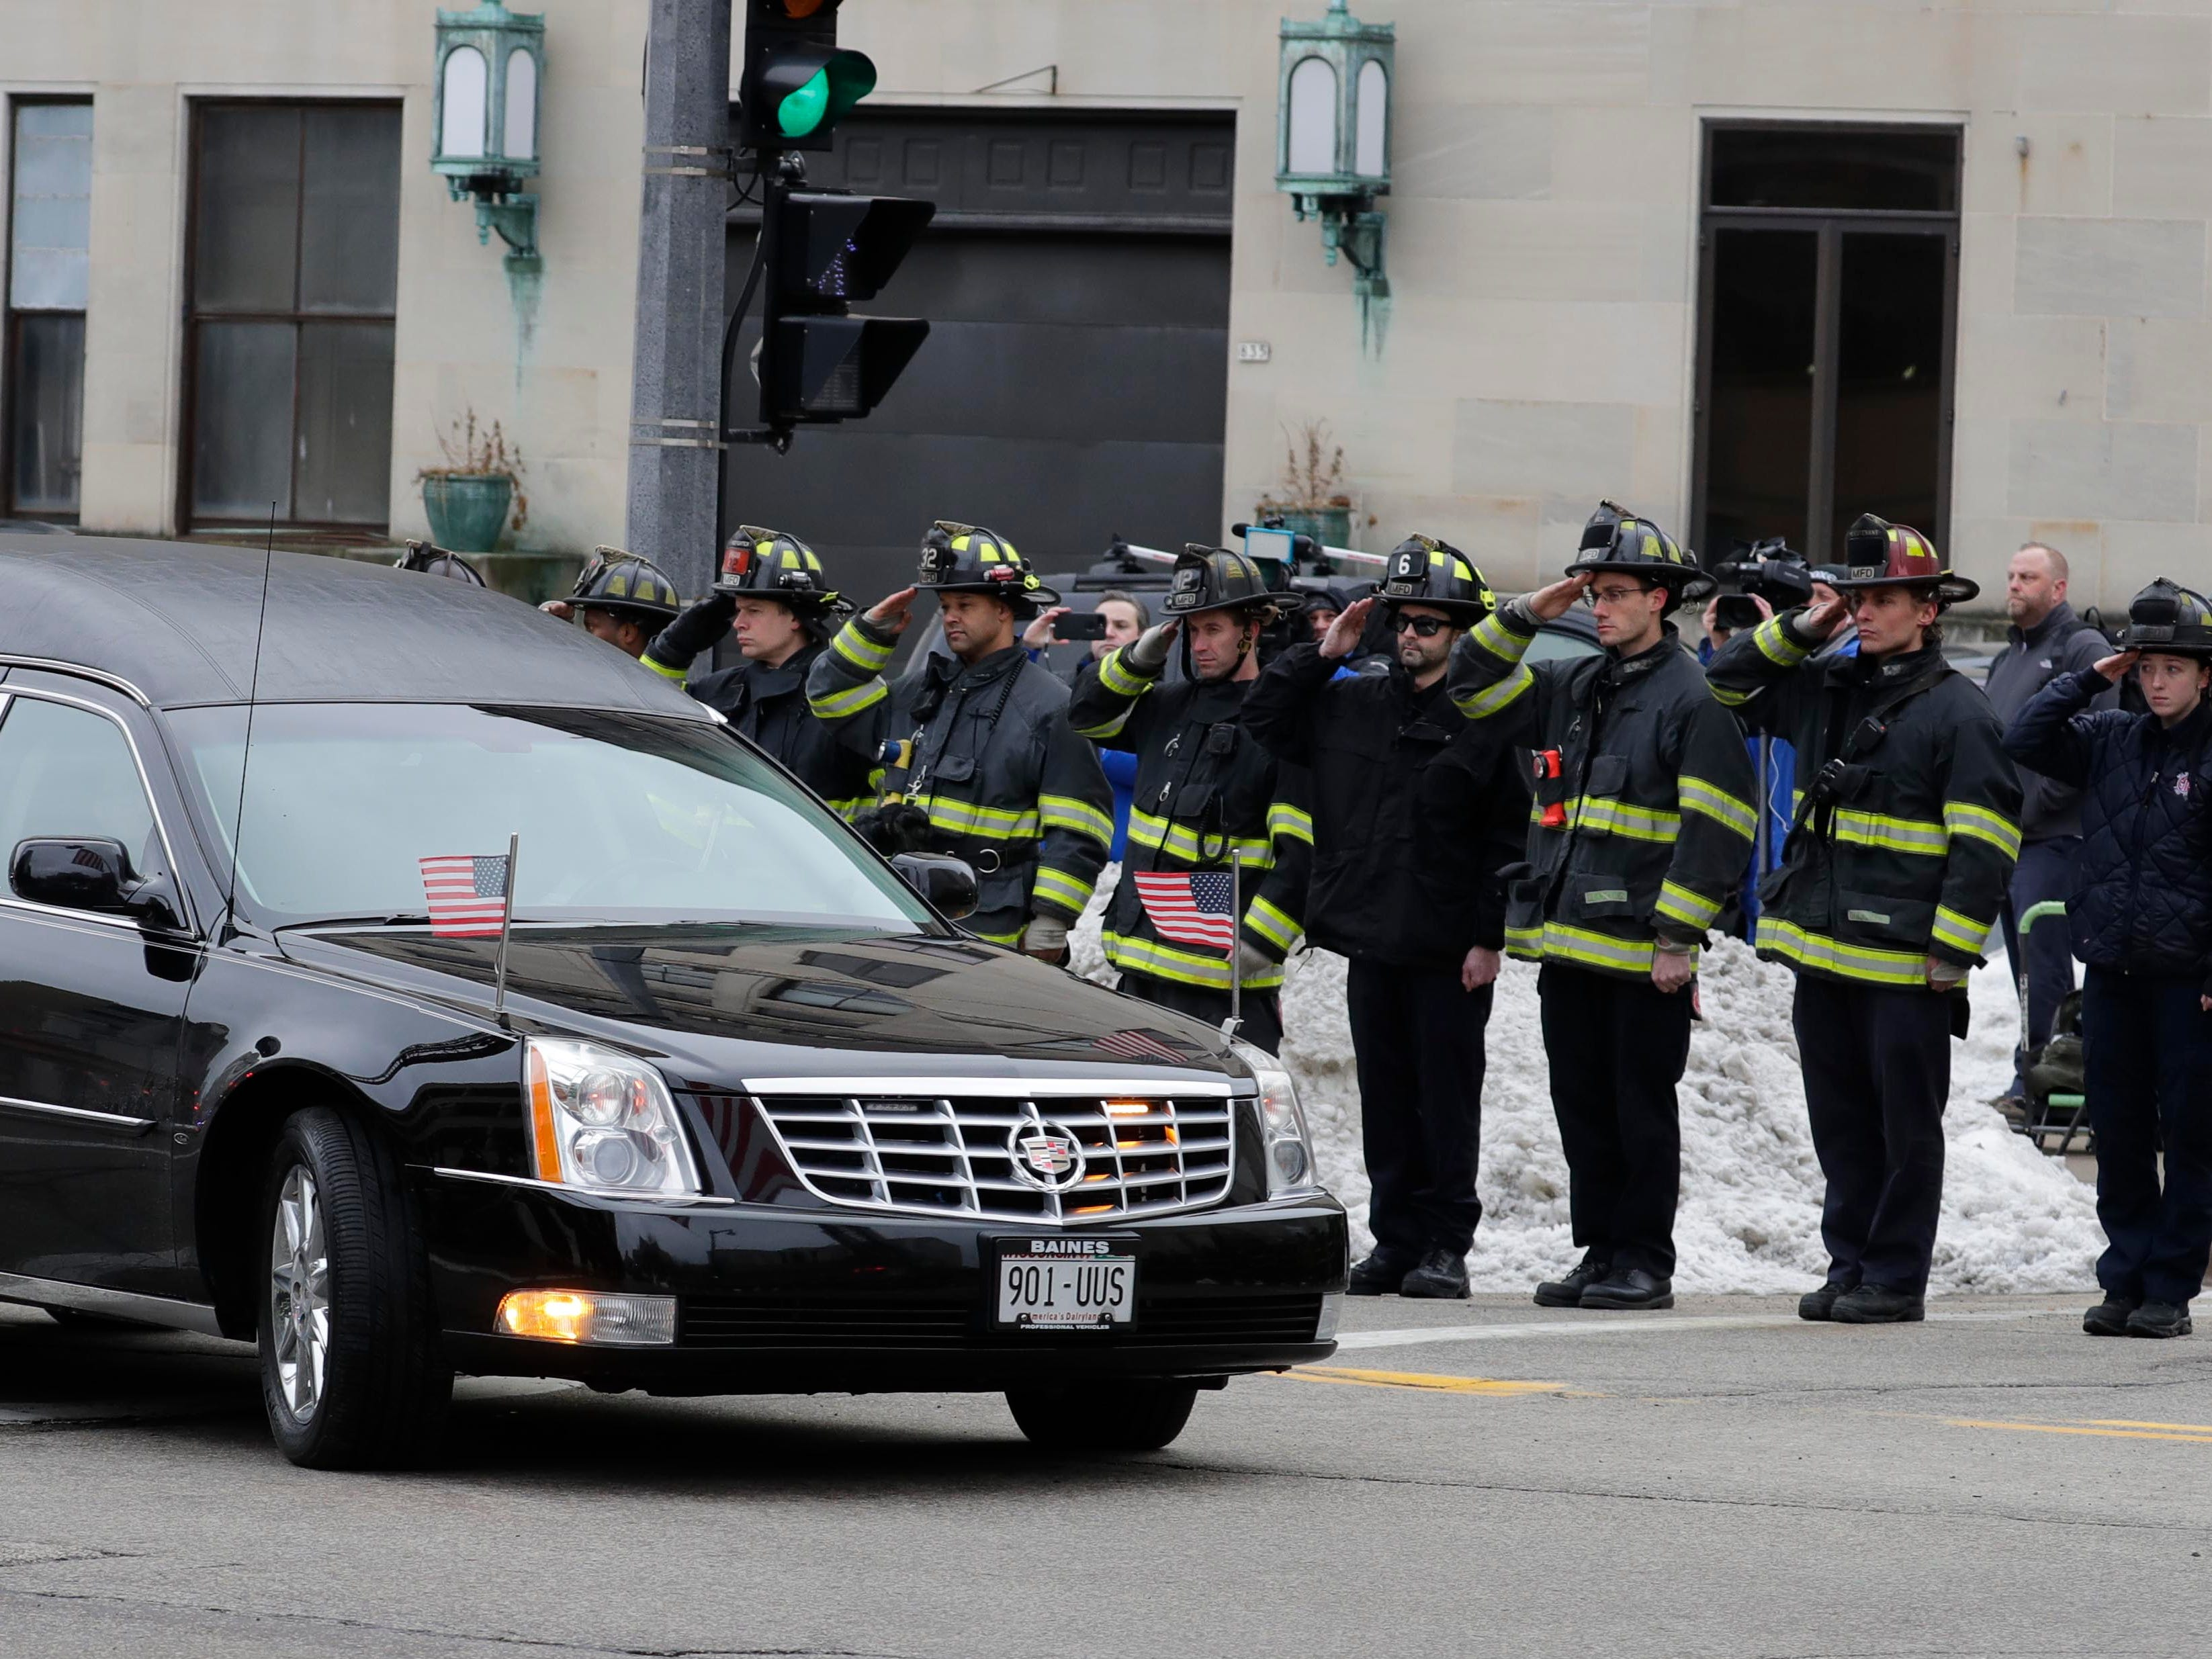 The hearse containing the body of the officer passes the intersection of 9th and State streets.